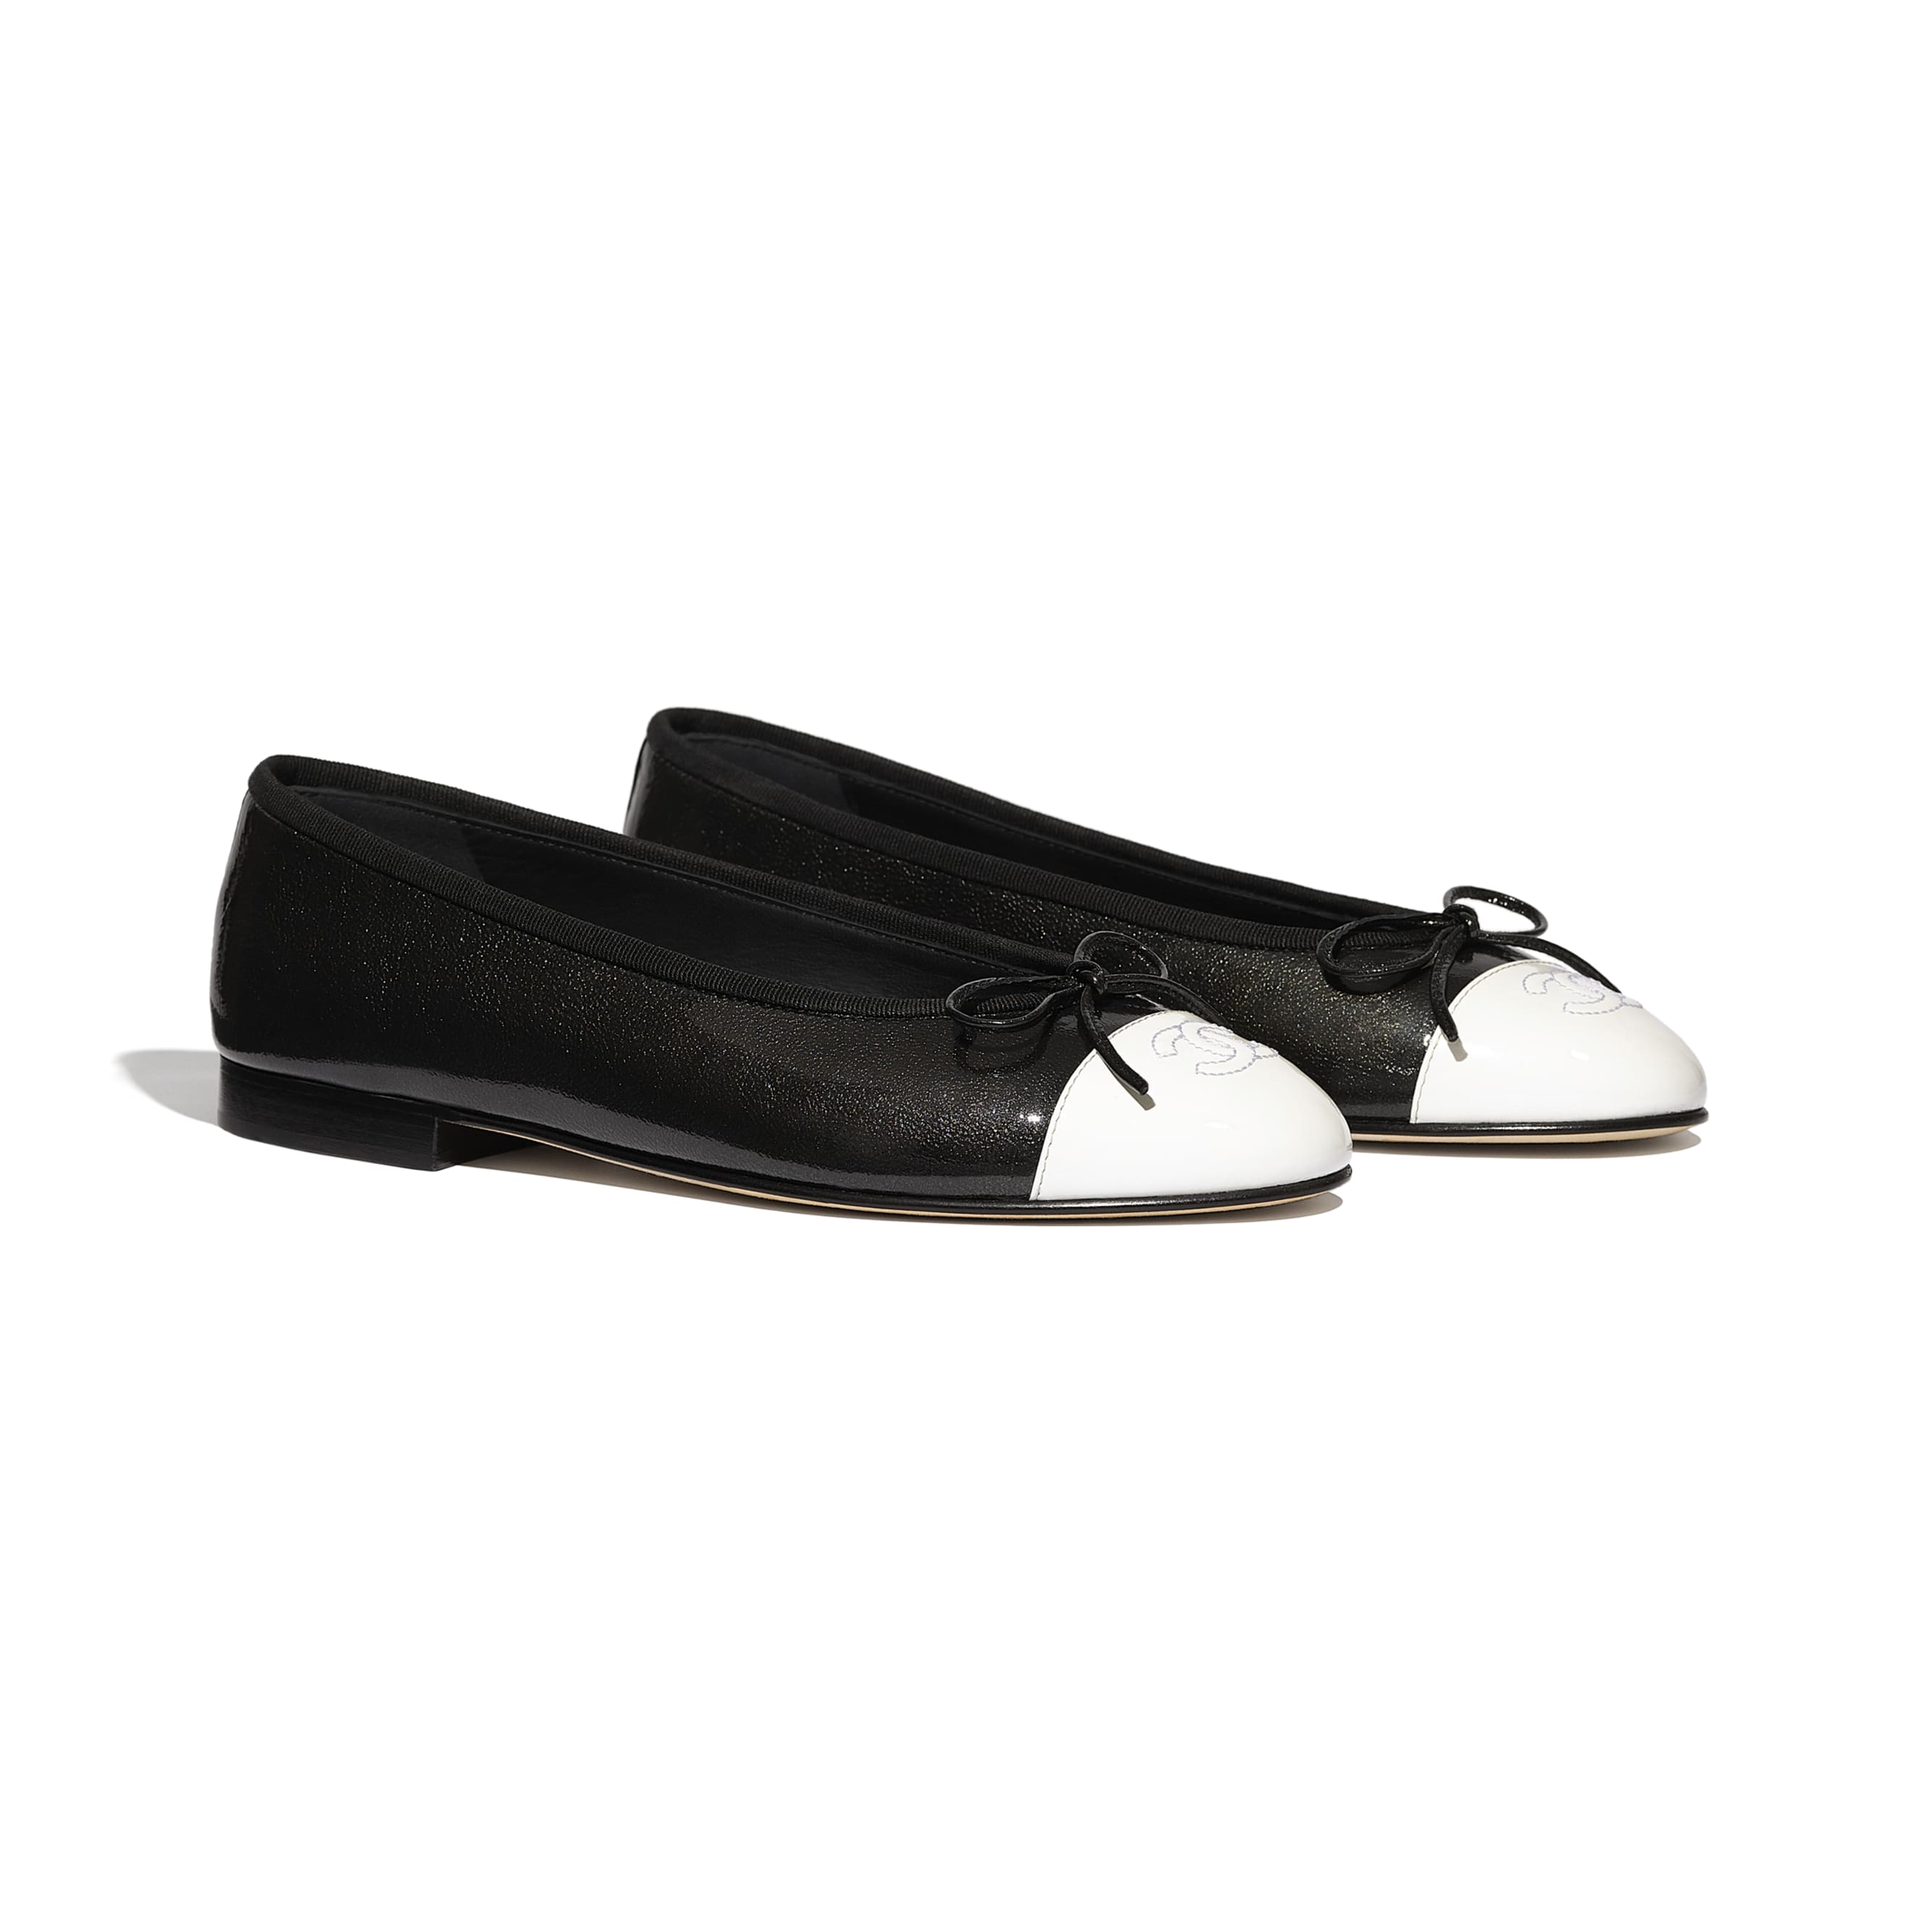 Flats - Black & White - Shiny Goatskin & Patent Calfskin - Alternative view - see standard sized version